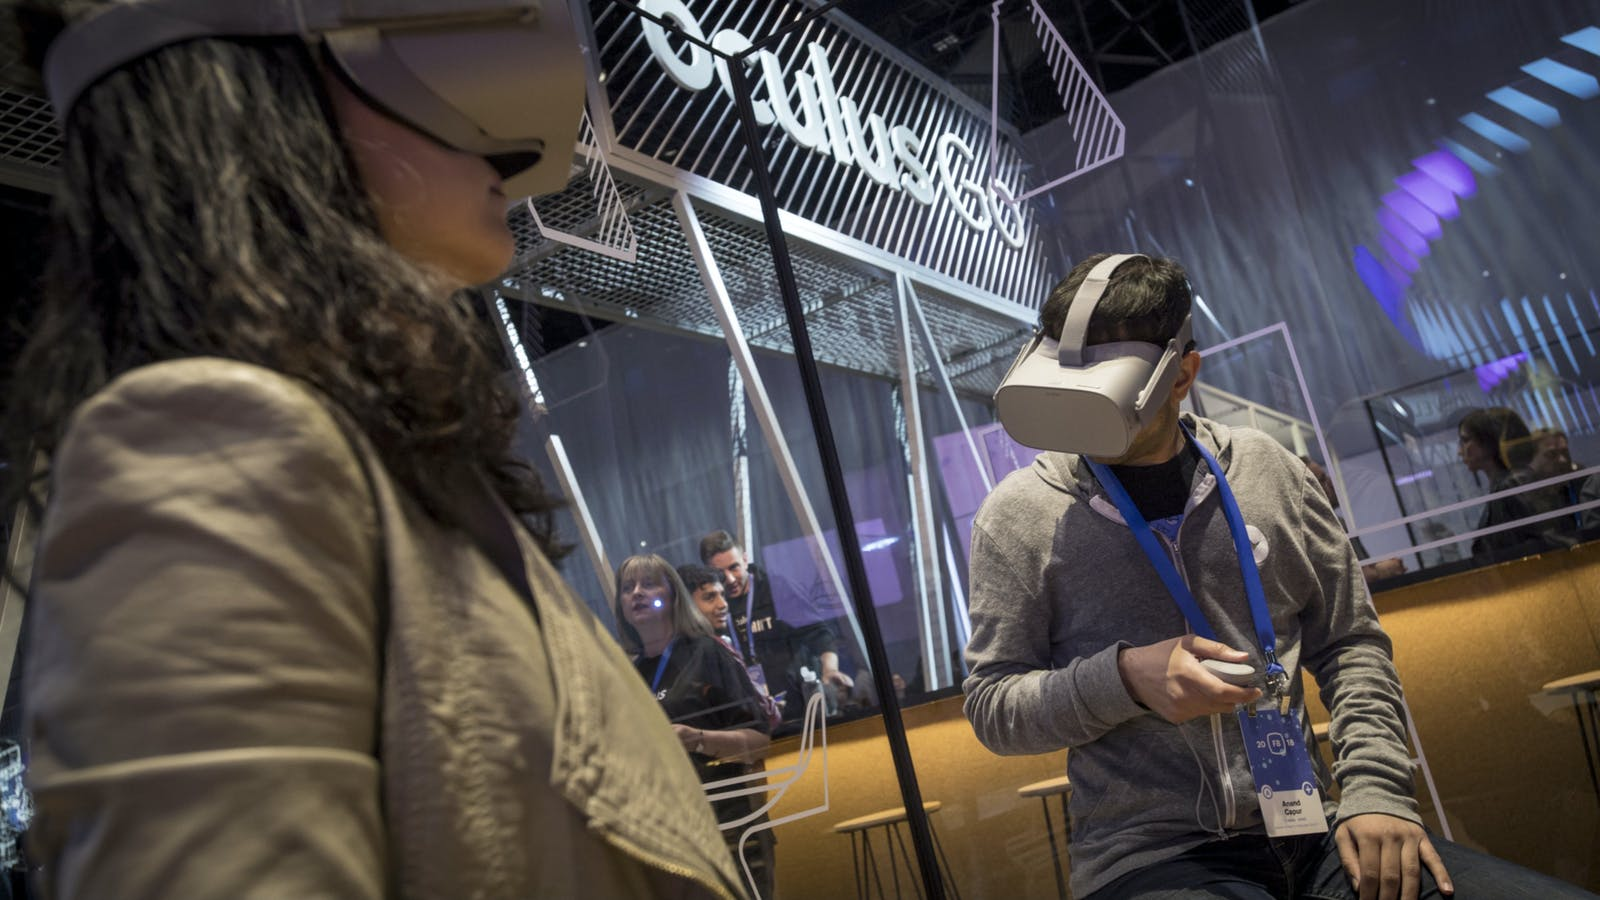 People wearing Oculus Go headsets in 2018. These devices have already been discontinued. Photo by Bloomberg.